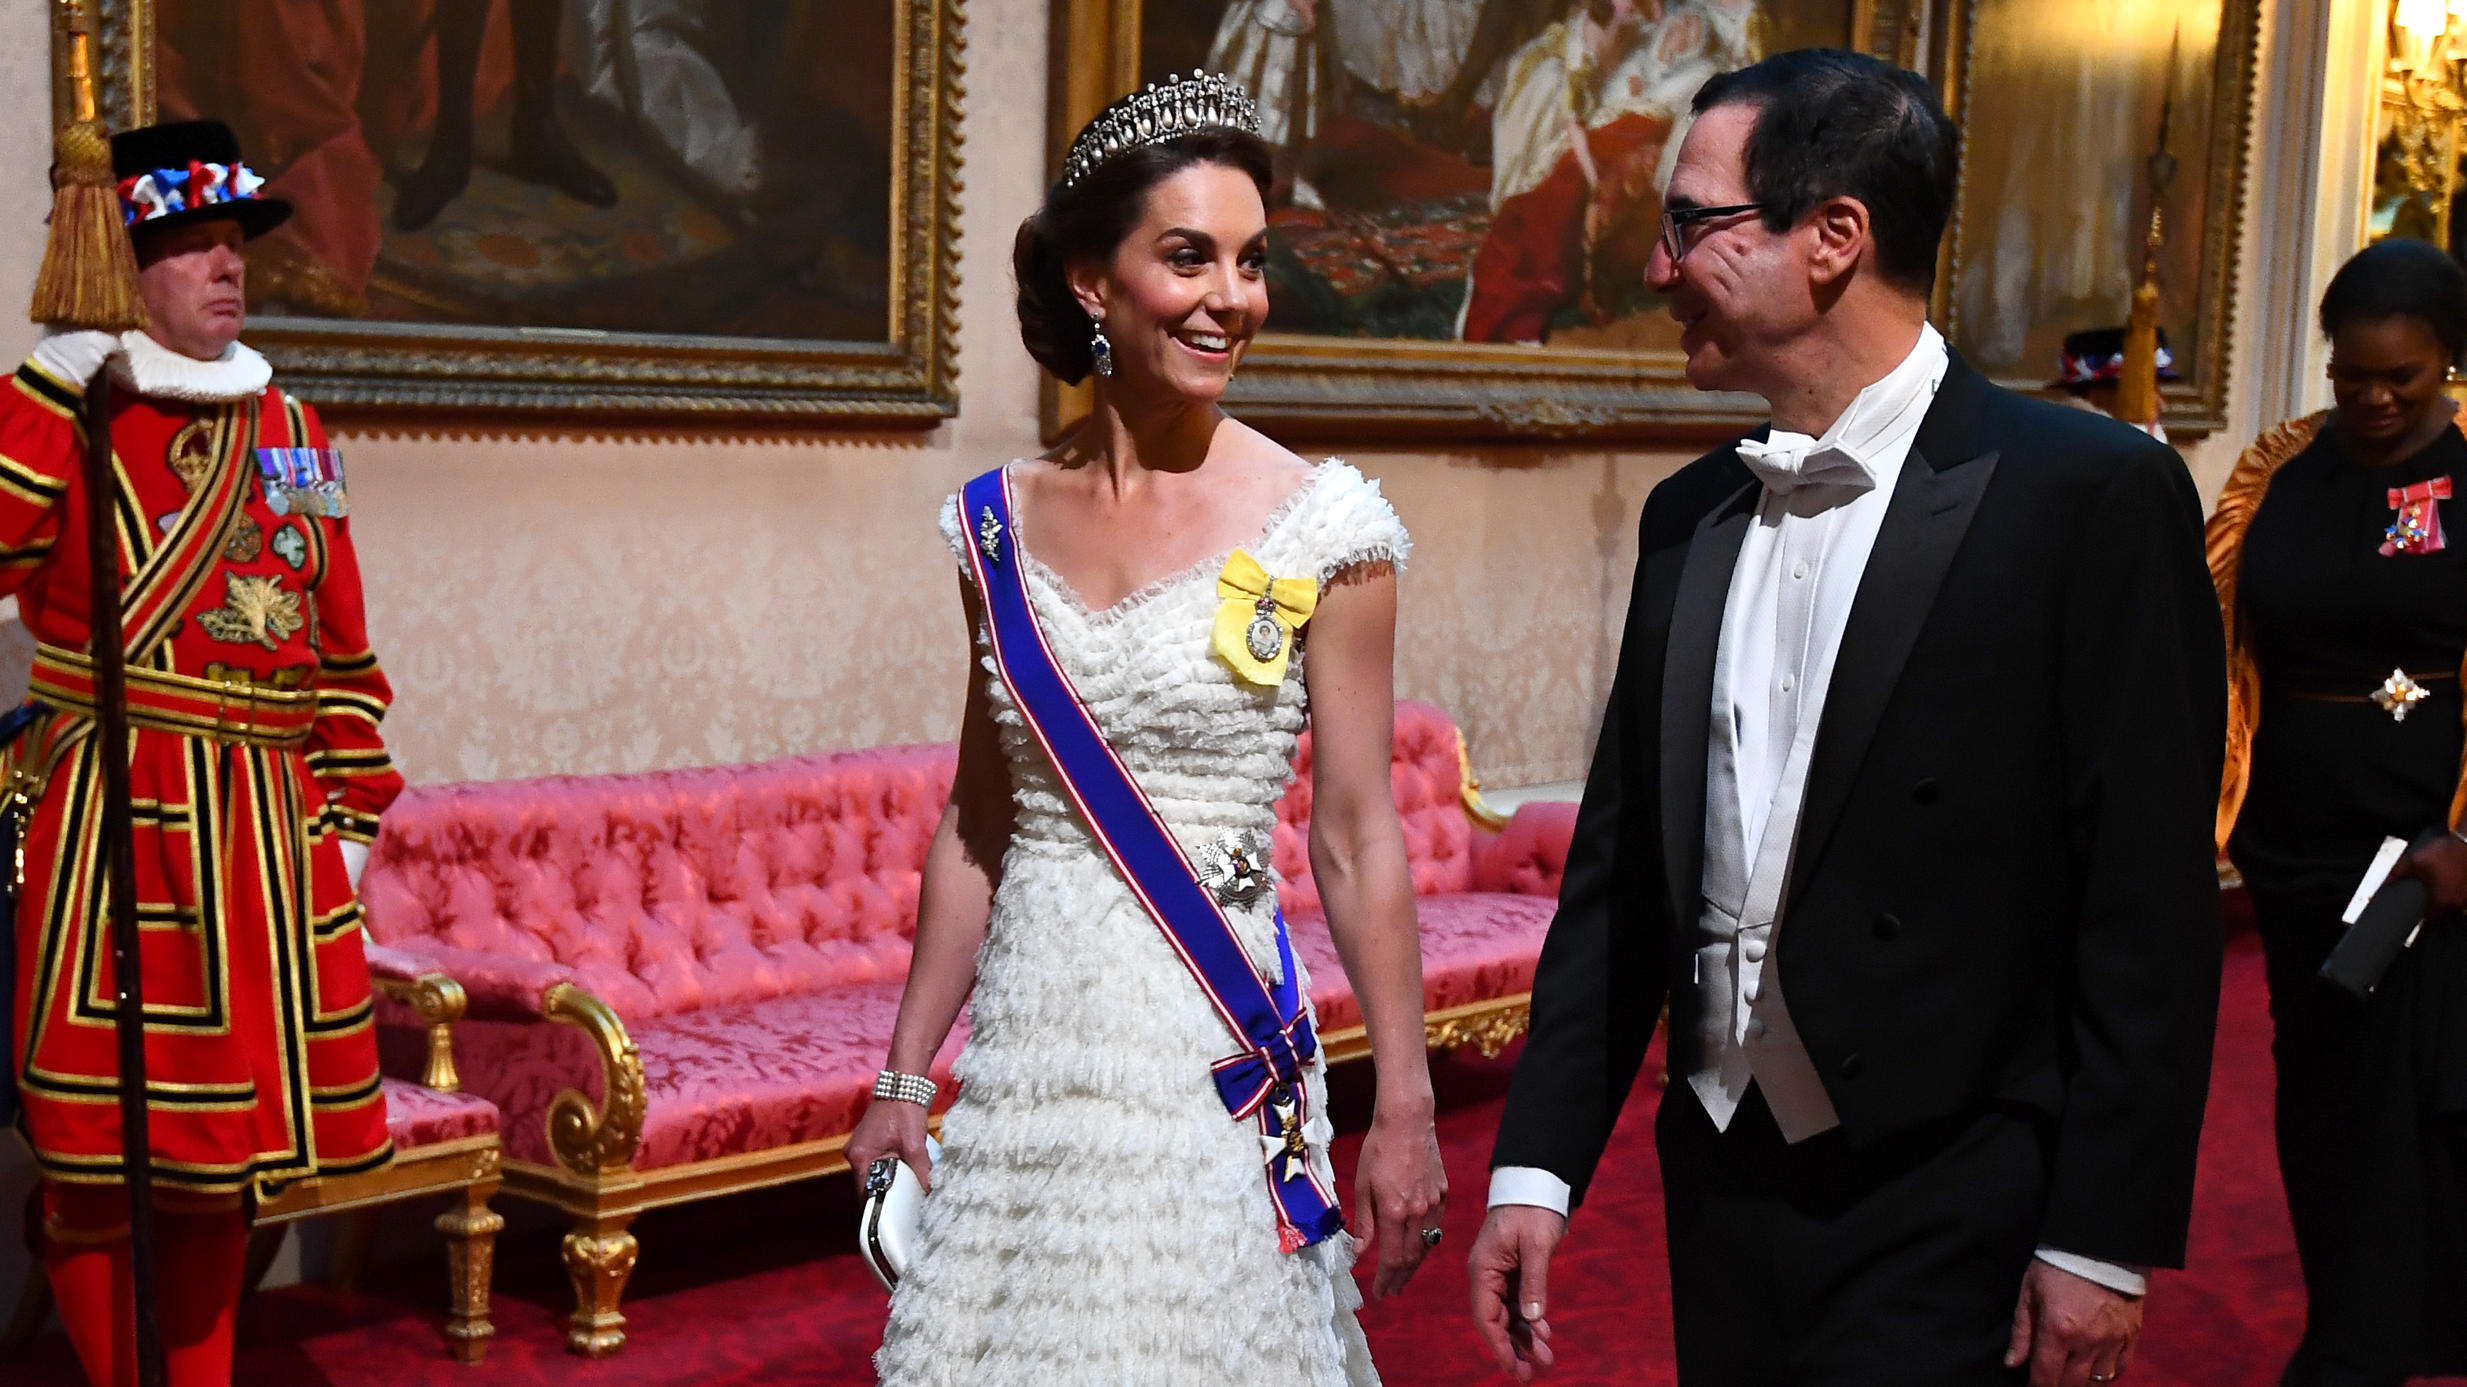 Herzogin Kate und Steven Mnuchin beimStaatsbankett im Buckingham Palace in London.